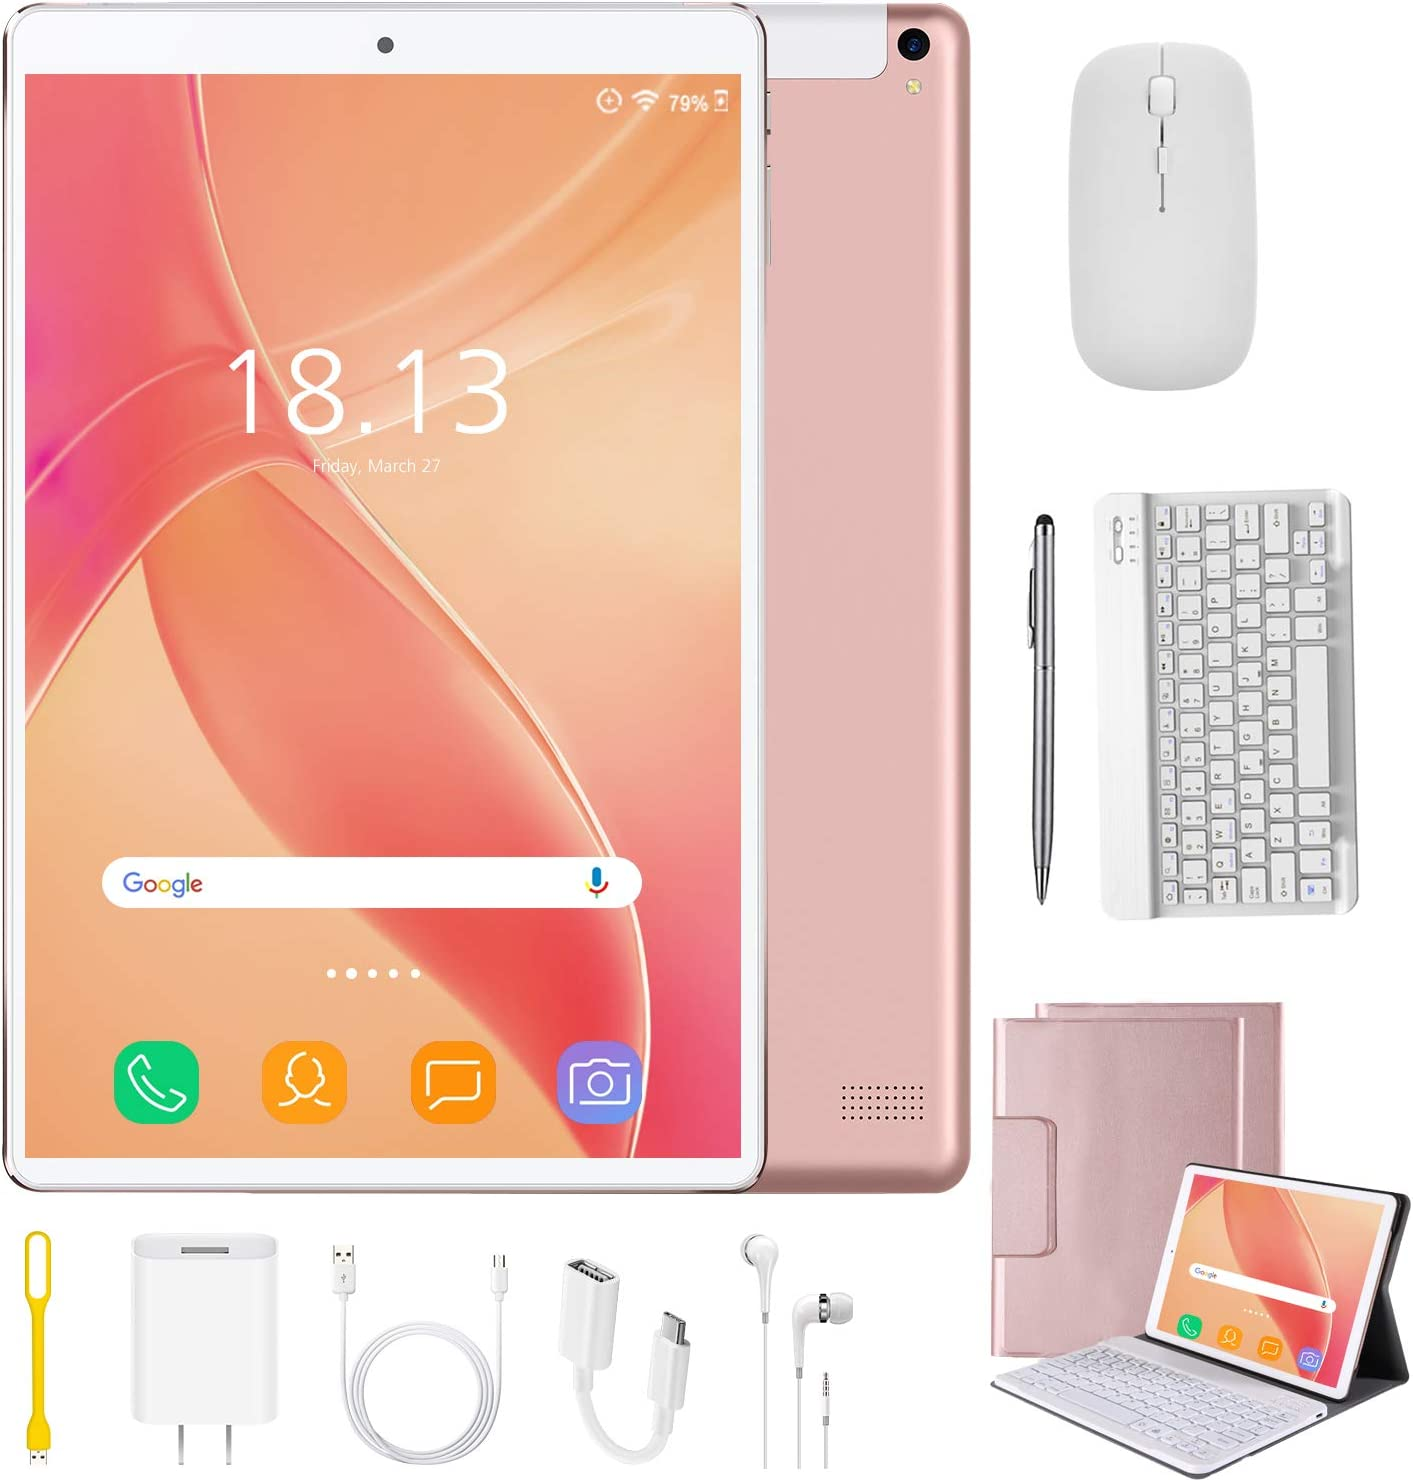 2 in 1 Tablets 10 Inch Android 9.0 with Keyboard Mouse, 4GB RAM+64GB ROM/128GB Upgrade Tablets, Dual SIM 4G, Quad Core, 13MP Dual Camera, 8000mAh, WiFi, GPS, Bluetooth, Google Store Phones (Pink)